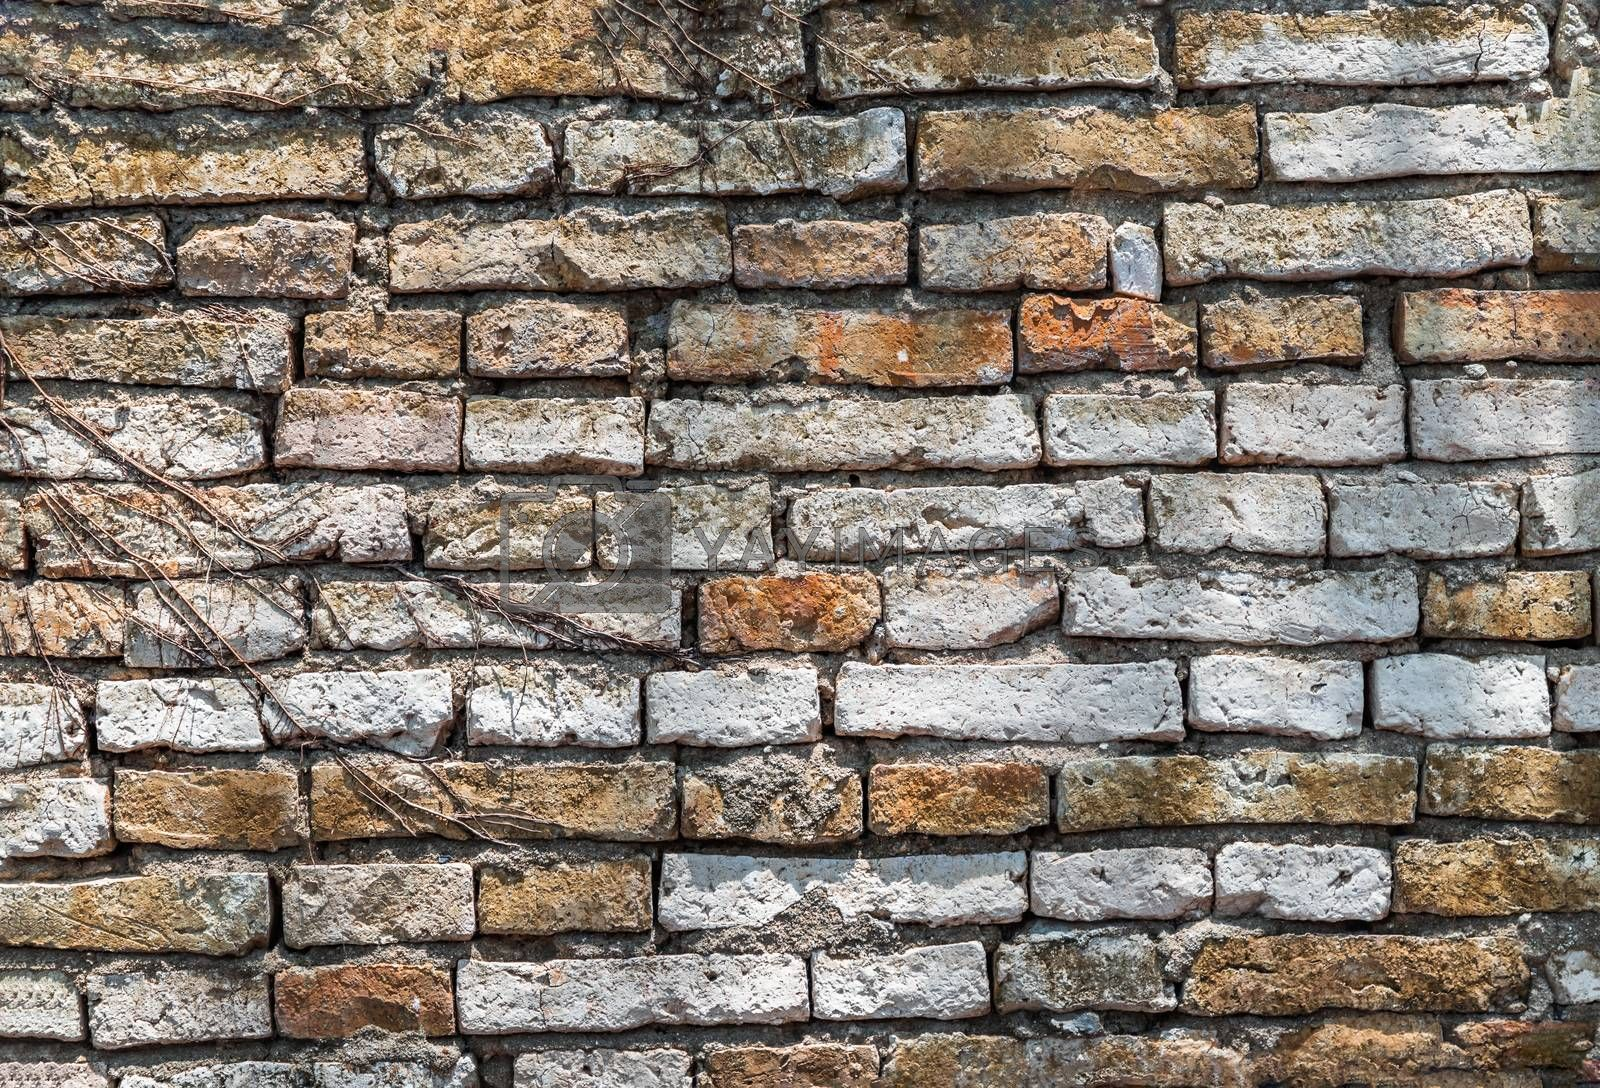 Empty Old Brick Wall Texture. Background of the old red brick walls. Rustic style, Copy Space.